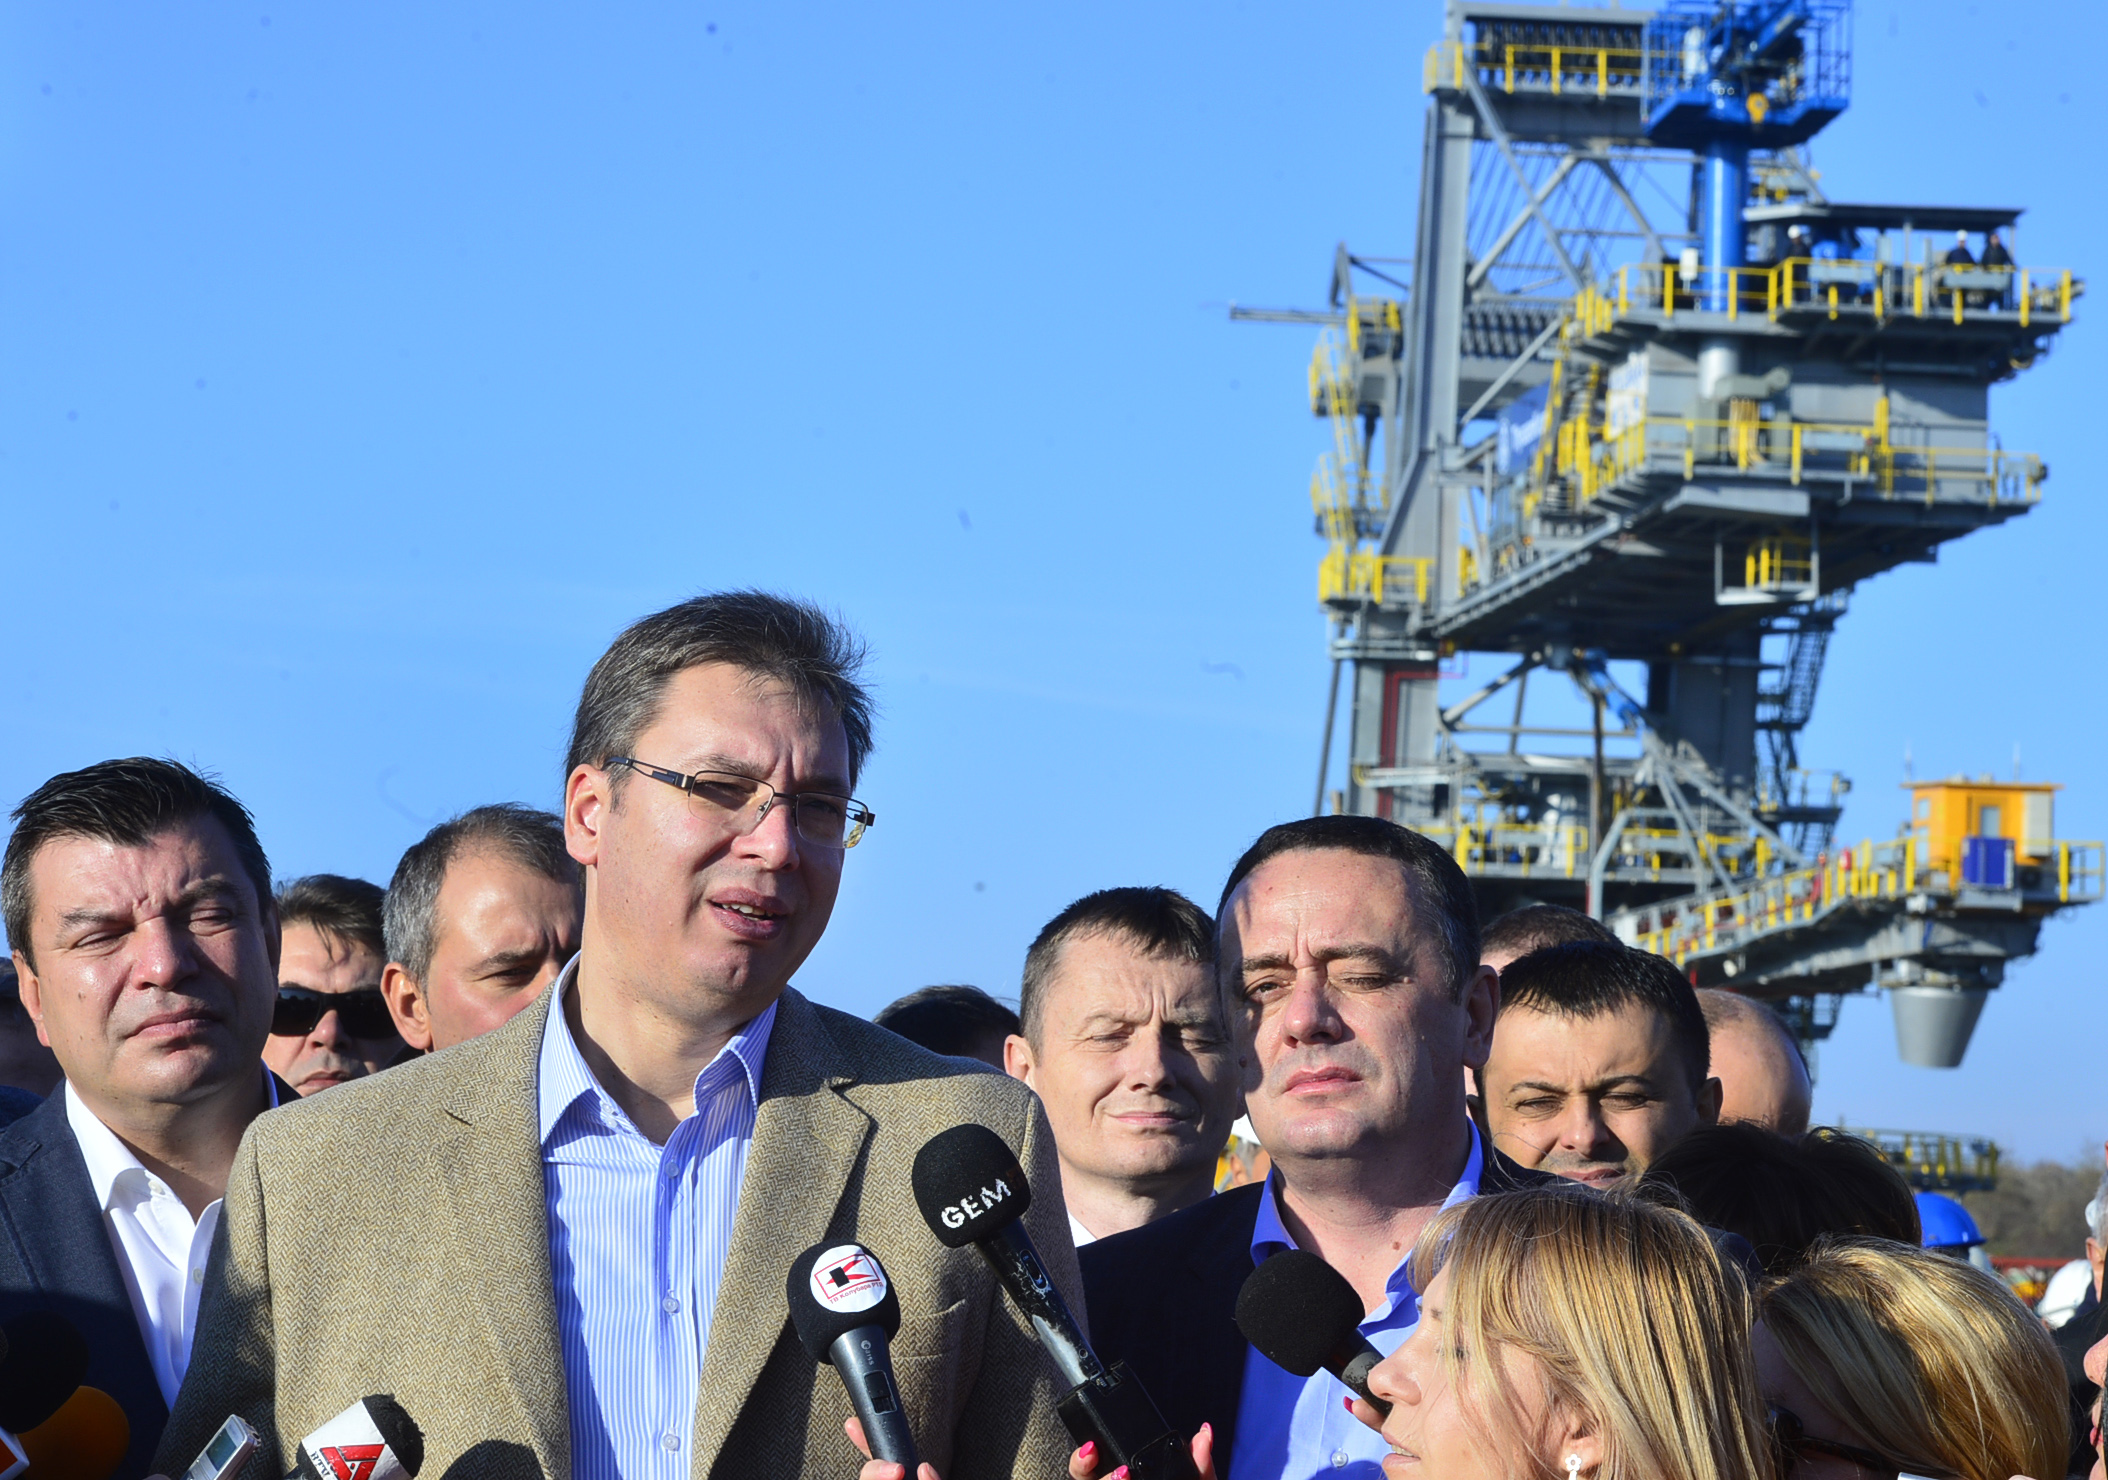 Vucic held cabinet meeting in coal complex, announced 'sweet' reshuffle